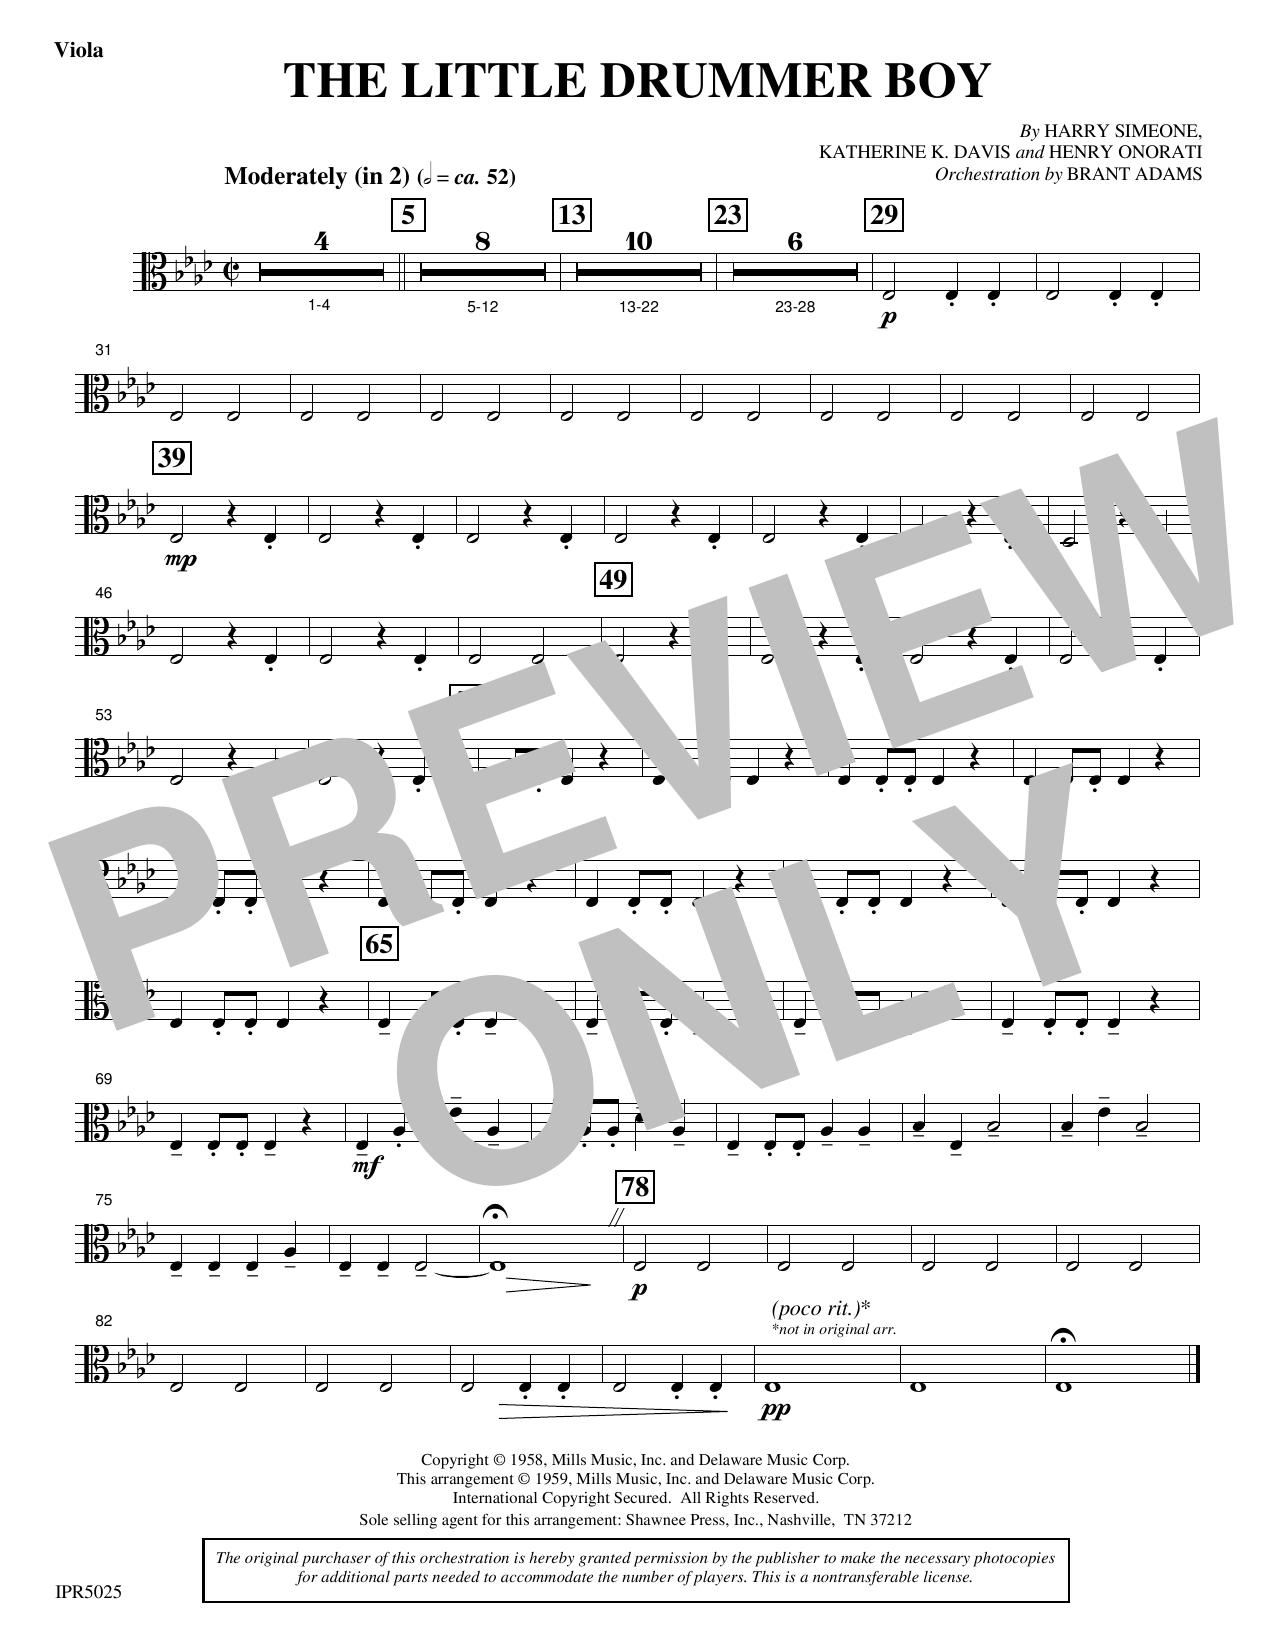 Harry Simeone The Little Drummer Boy - Viola sheet music notes and chords. Download Printable PDF.